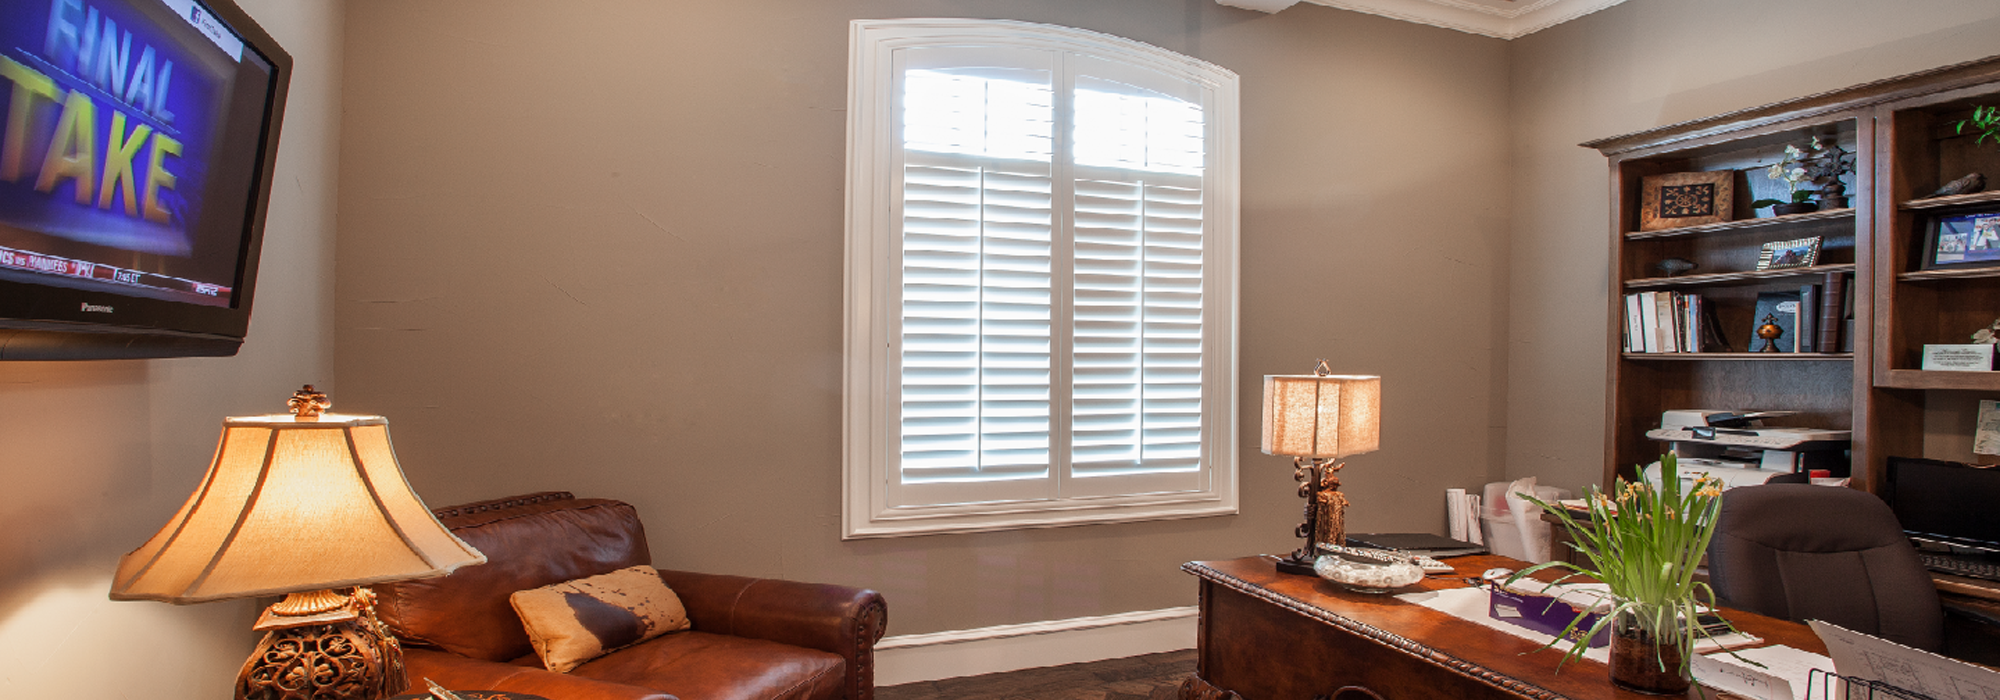 Install Shutters from Southwest Blinds and Shutters in Phoenix